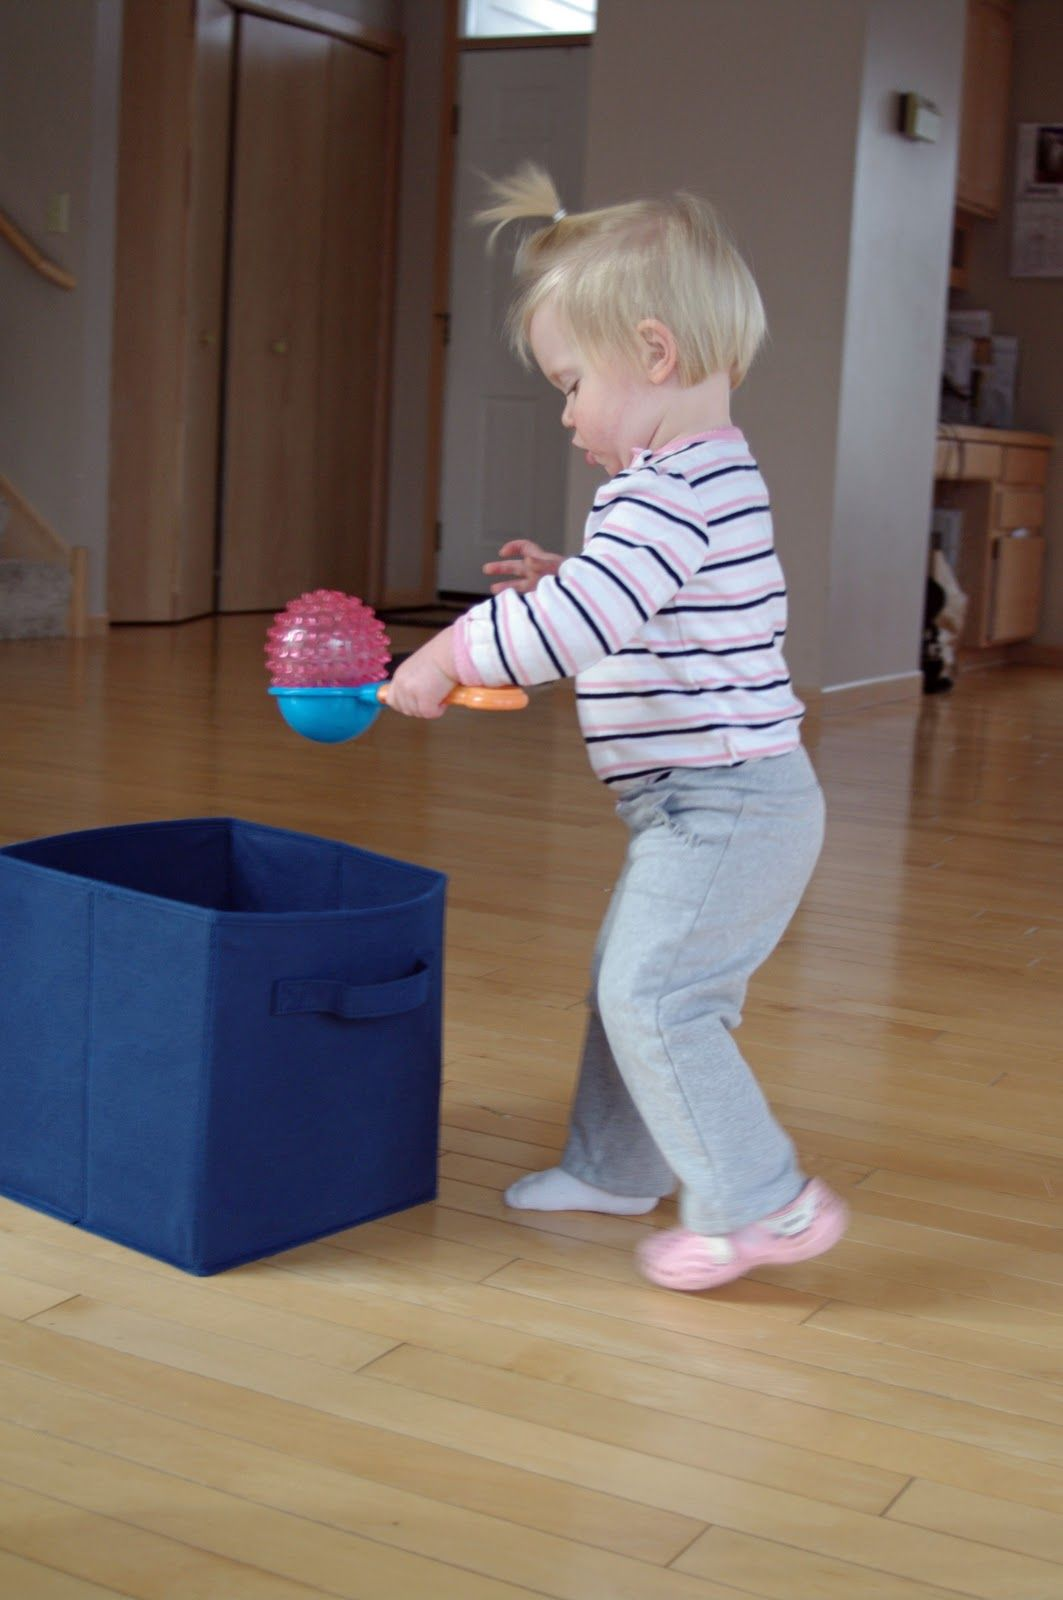 Walk Across The Room To Transfer Balls From One Bin To Another